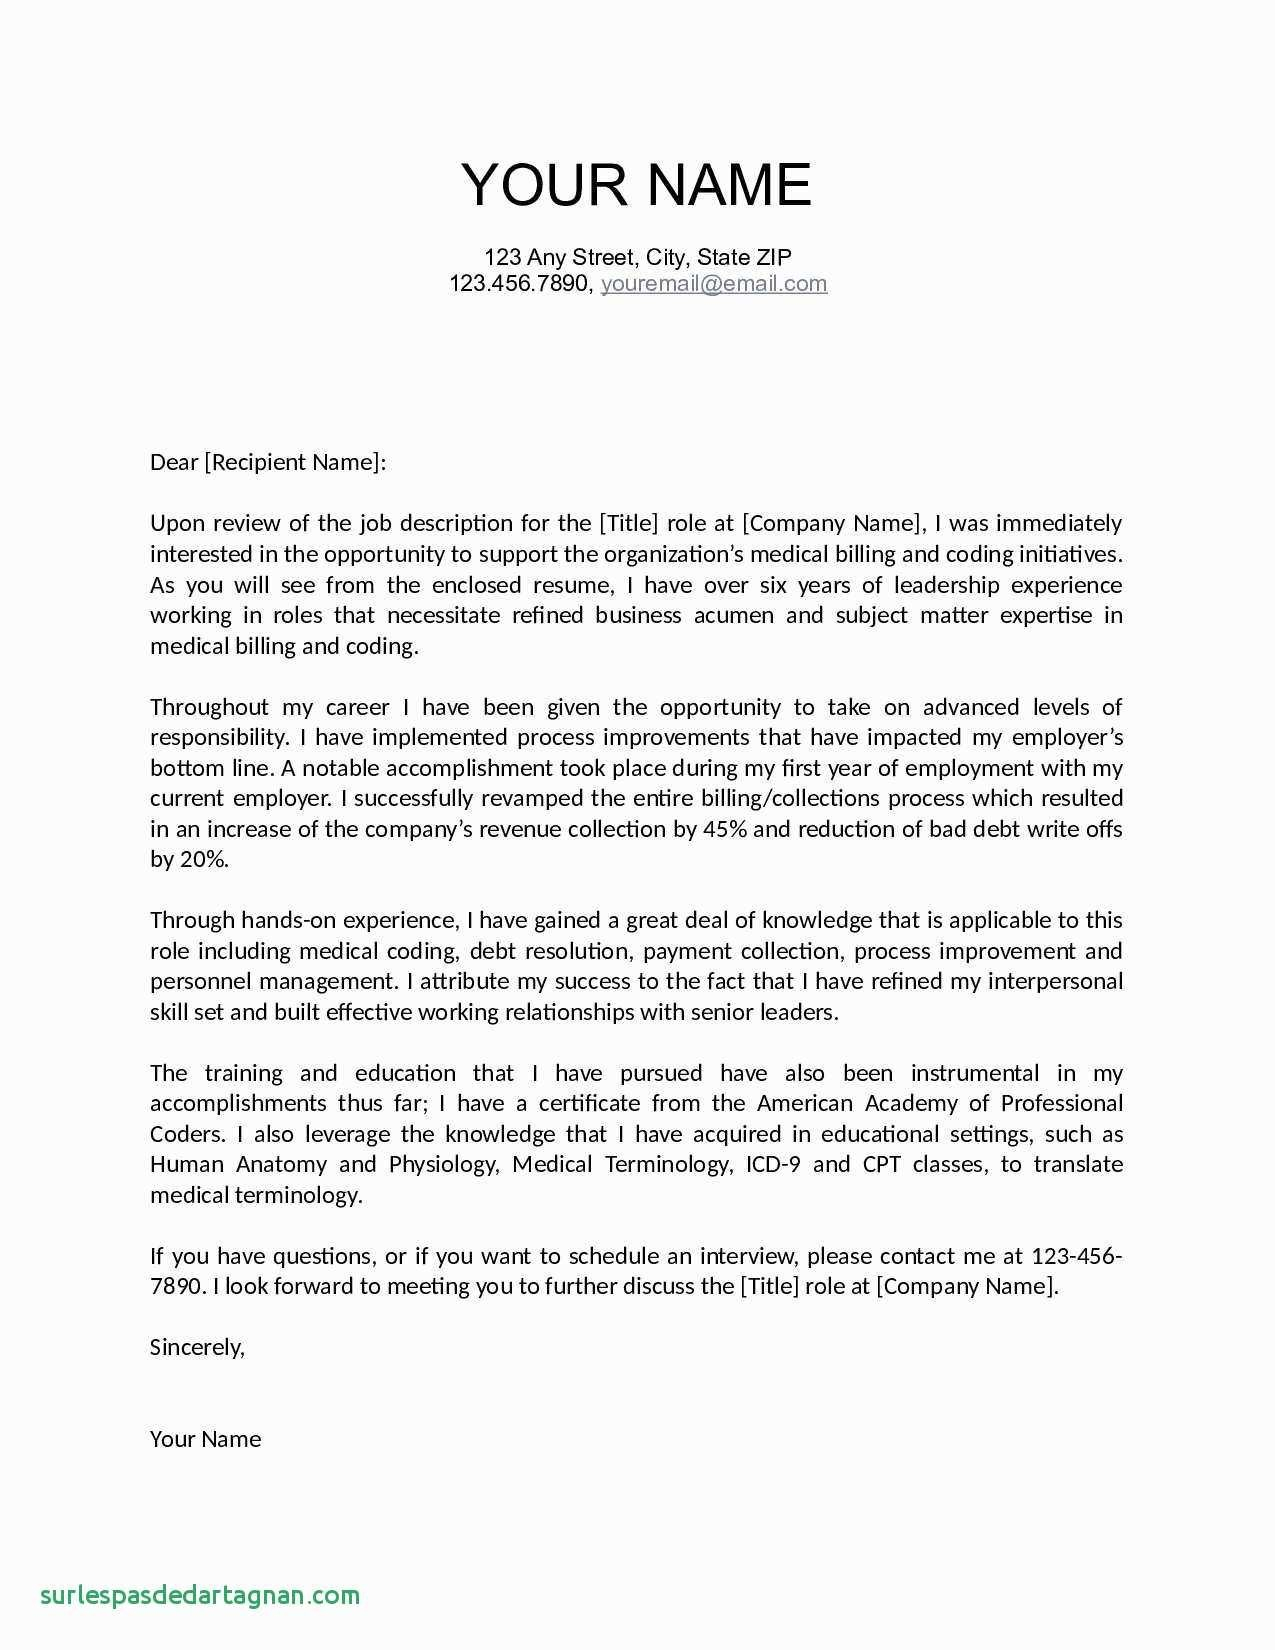 Federal Cover Letter Template - Cover Letter format Federal Jobs New Fresh Job Fer Letter Template